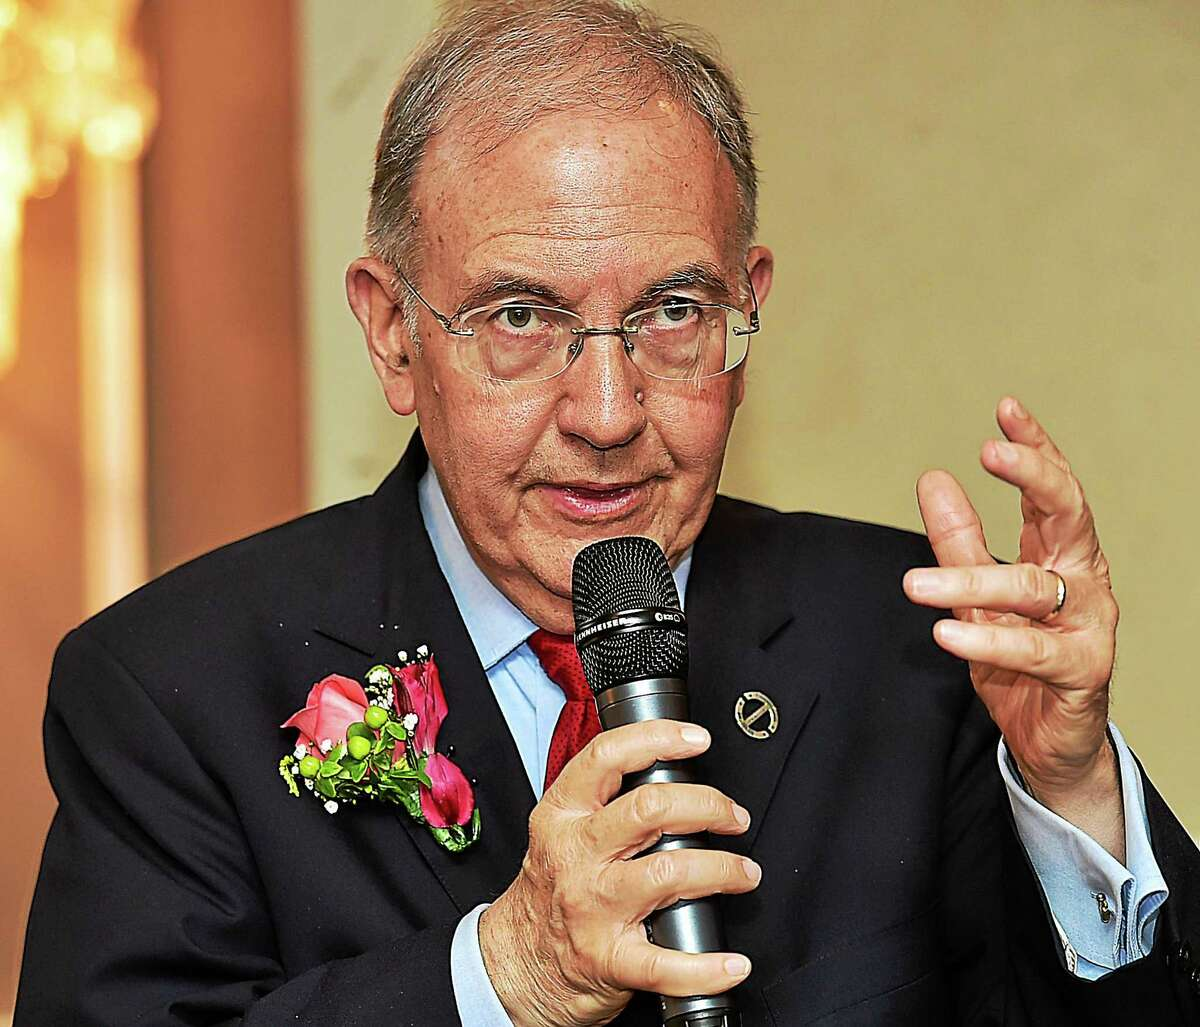 Senate President Martin M. Looney speaks at Anthony's Ocean View in New Haven on Oct. 15, 2015.